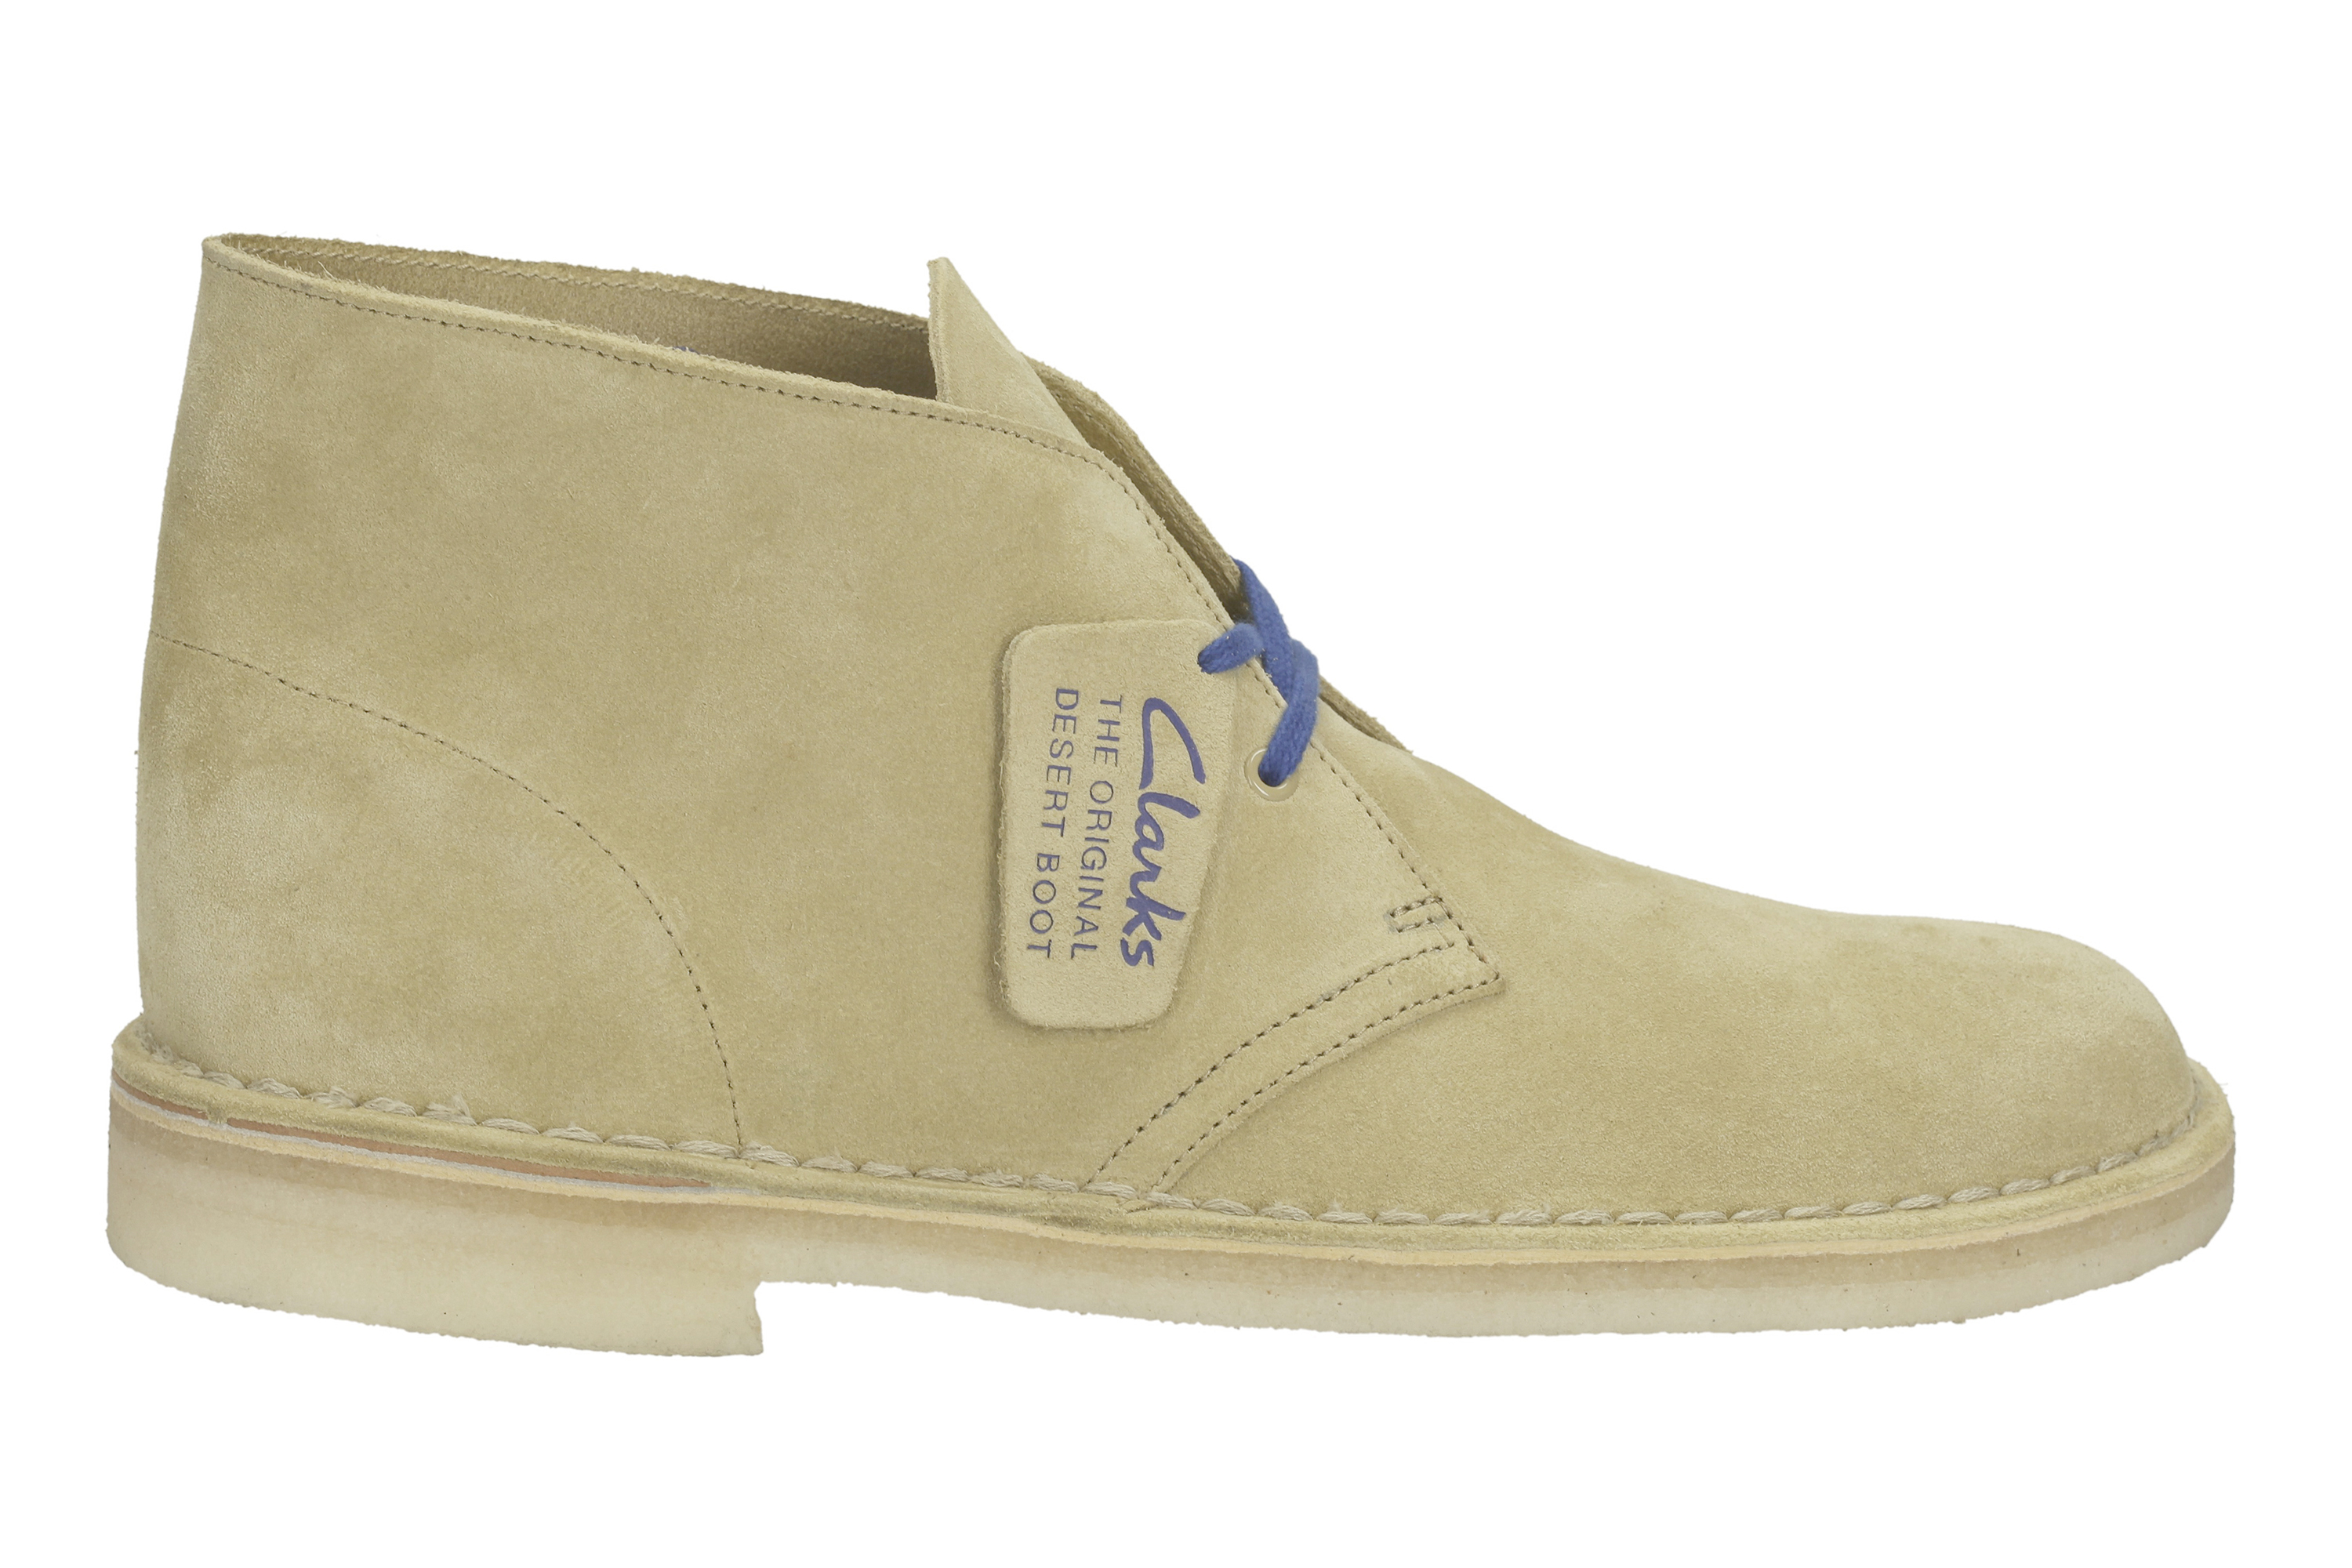 Desert Boot Maple Suede £89 €115